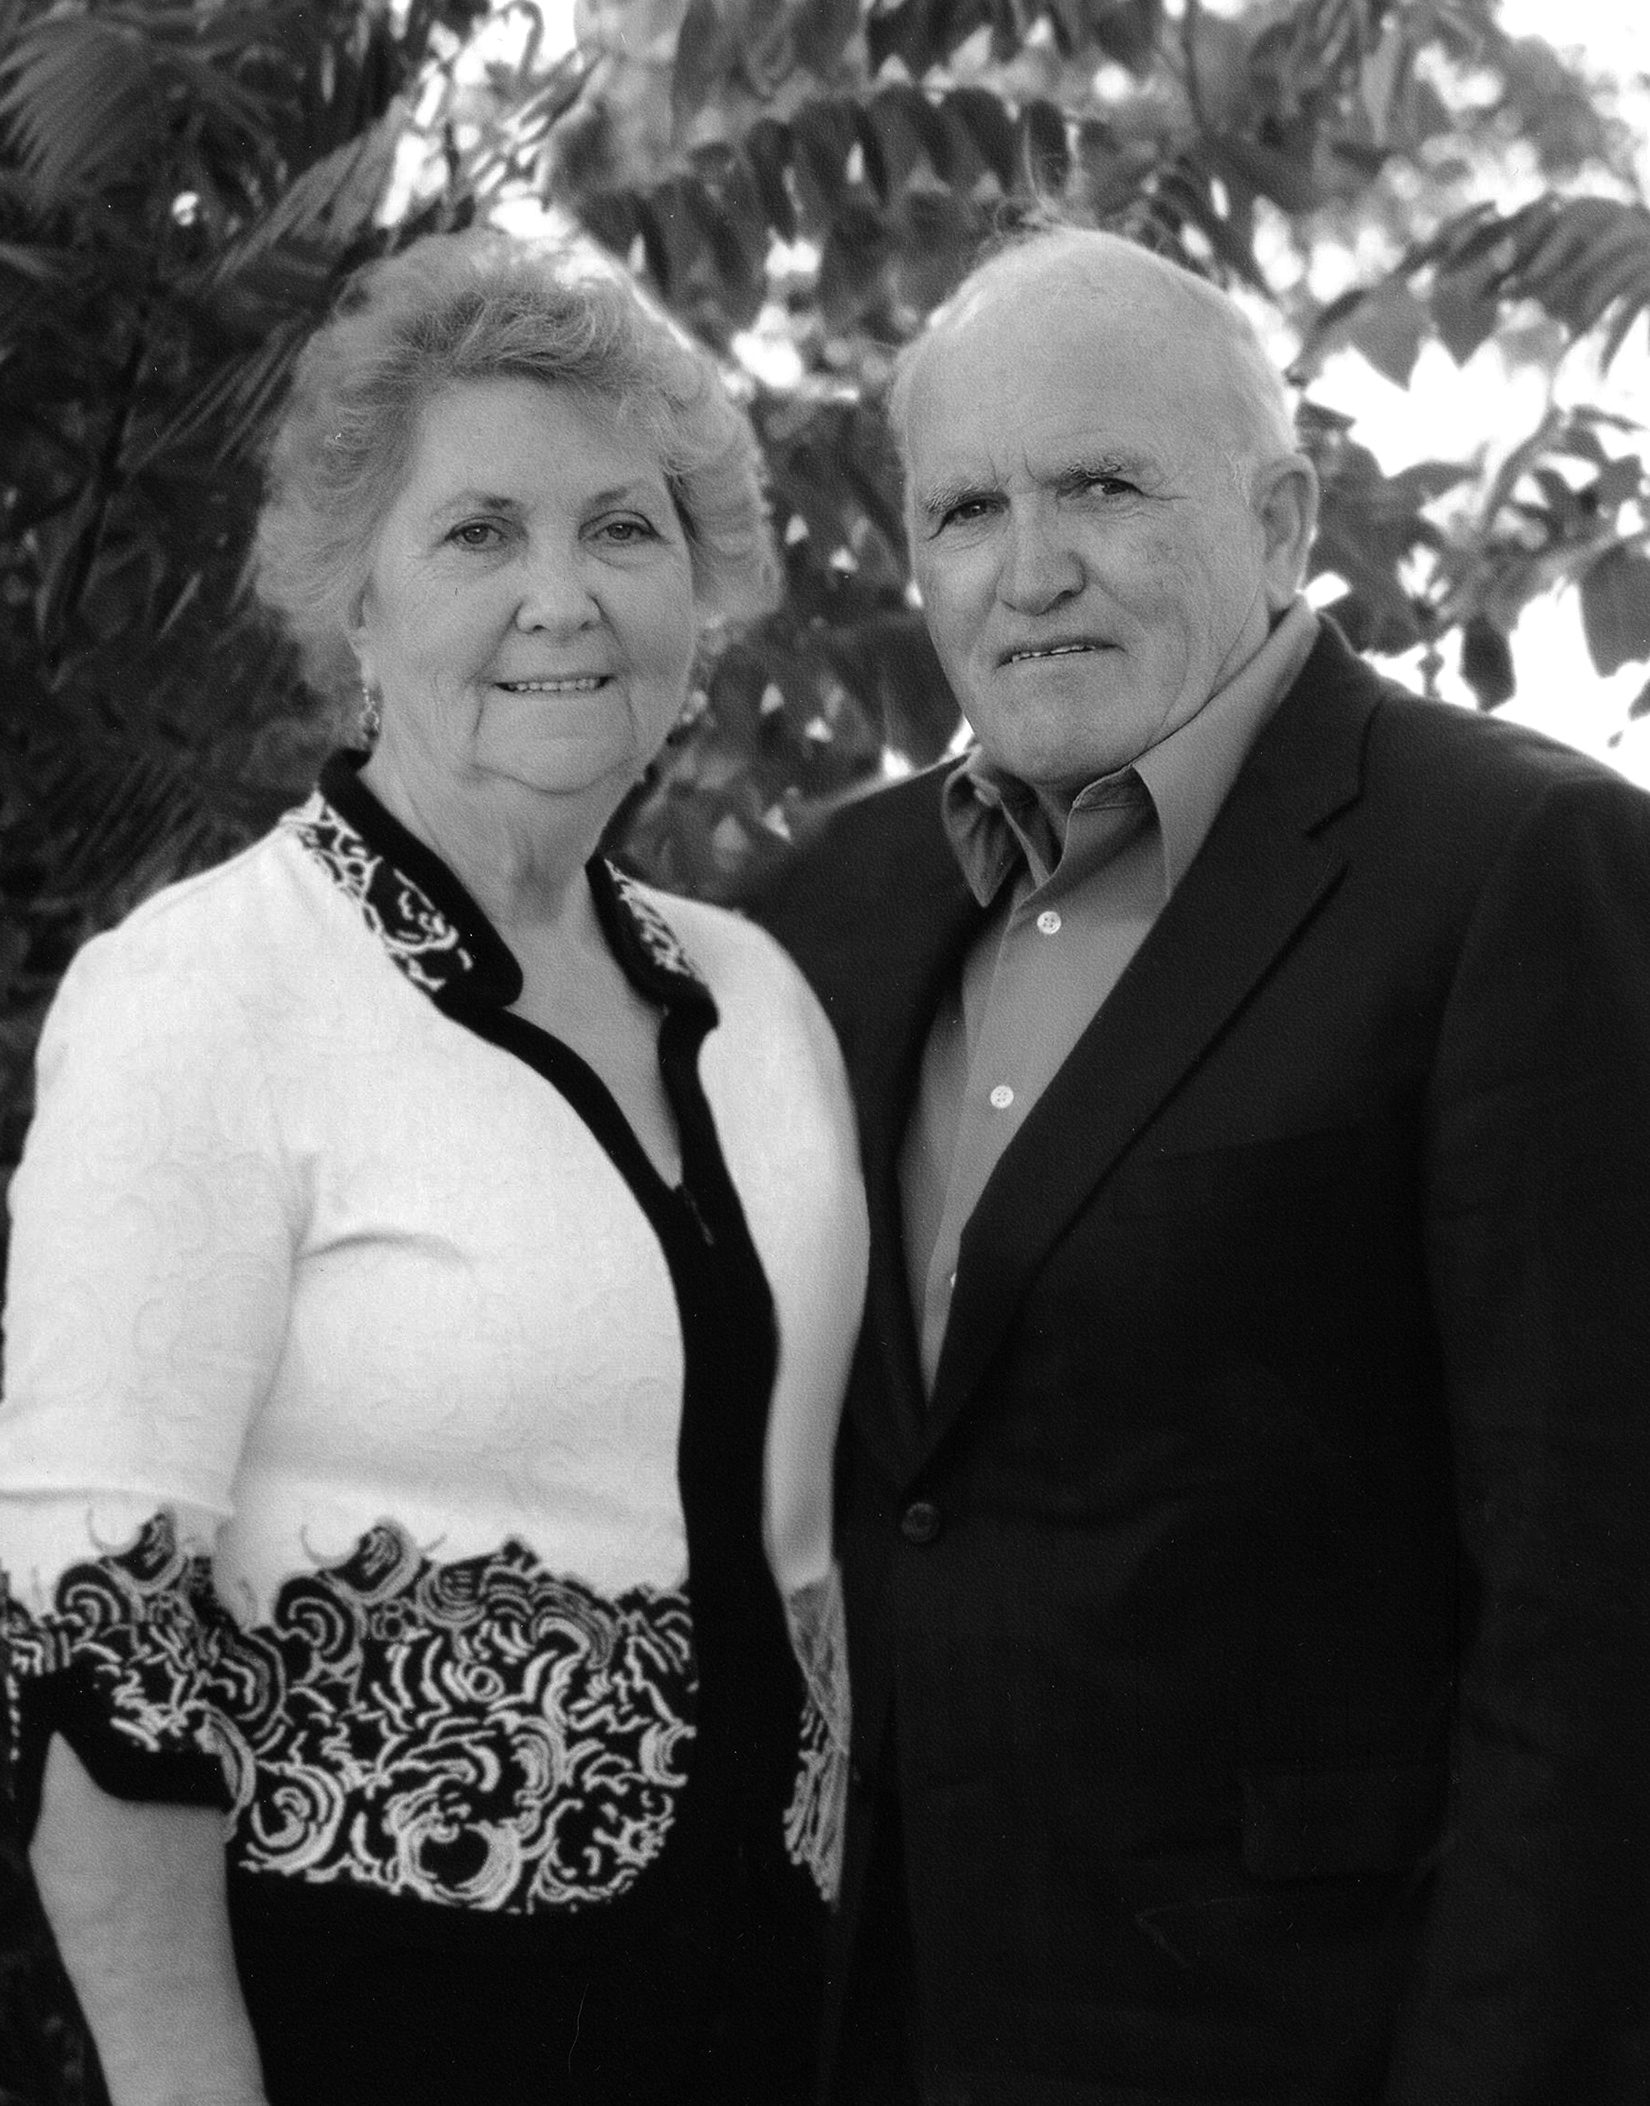 Keith and Marjorie Donnan